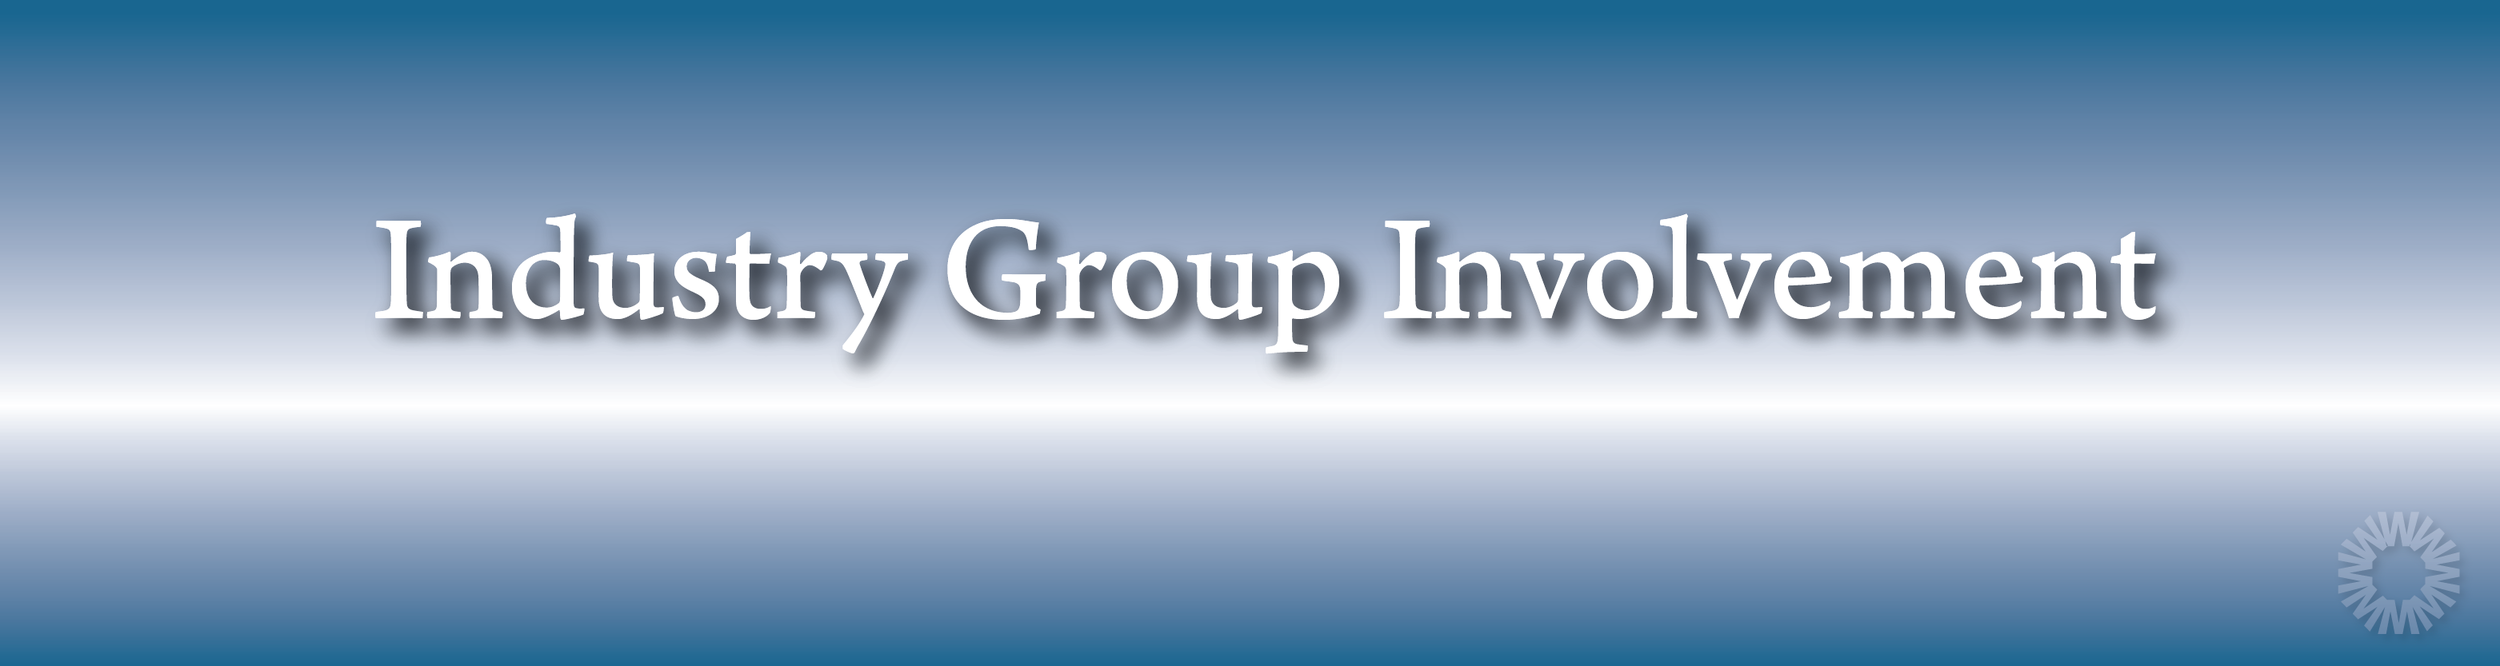 Header-Image-industry-group-involvement.png